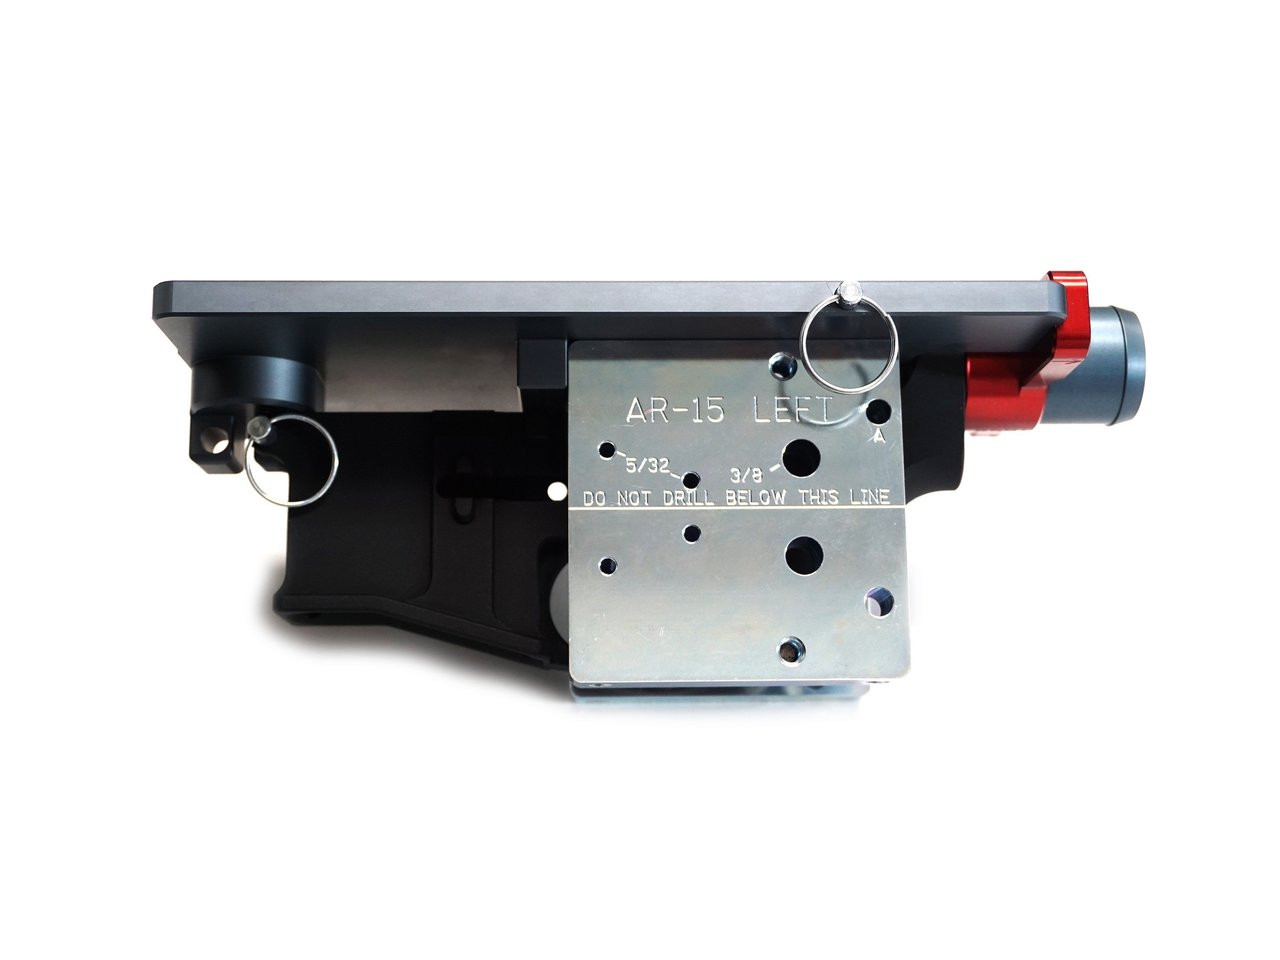 80 Percent Arms Easy Gen. 2 - Combined AR15 and .308 80% Lower with Jig, Tool Kit and Hand Drill Stabilizers - Ultimate Package